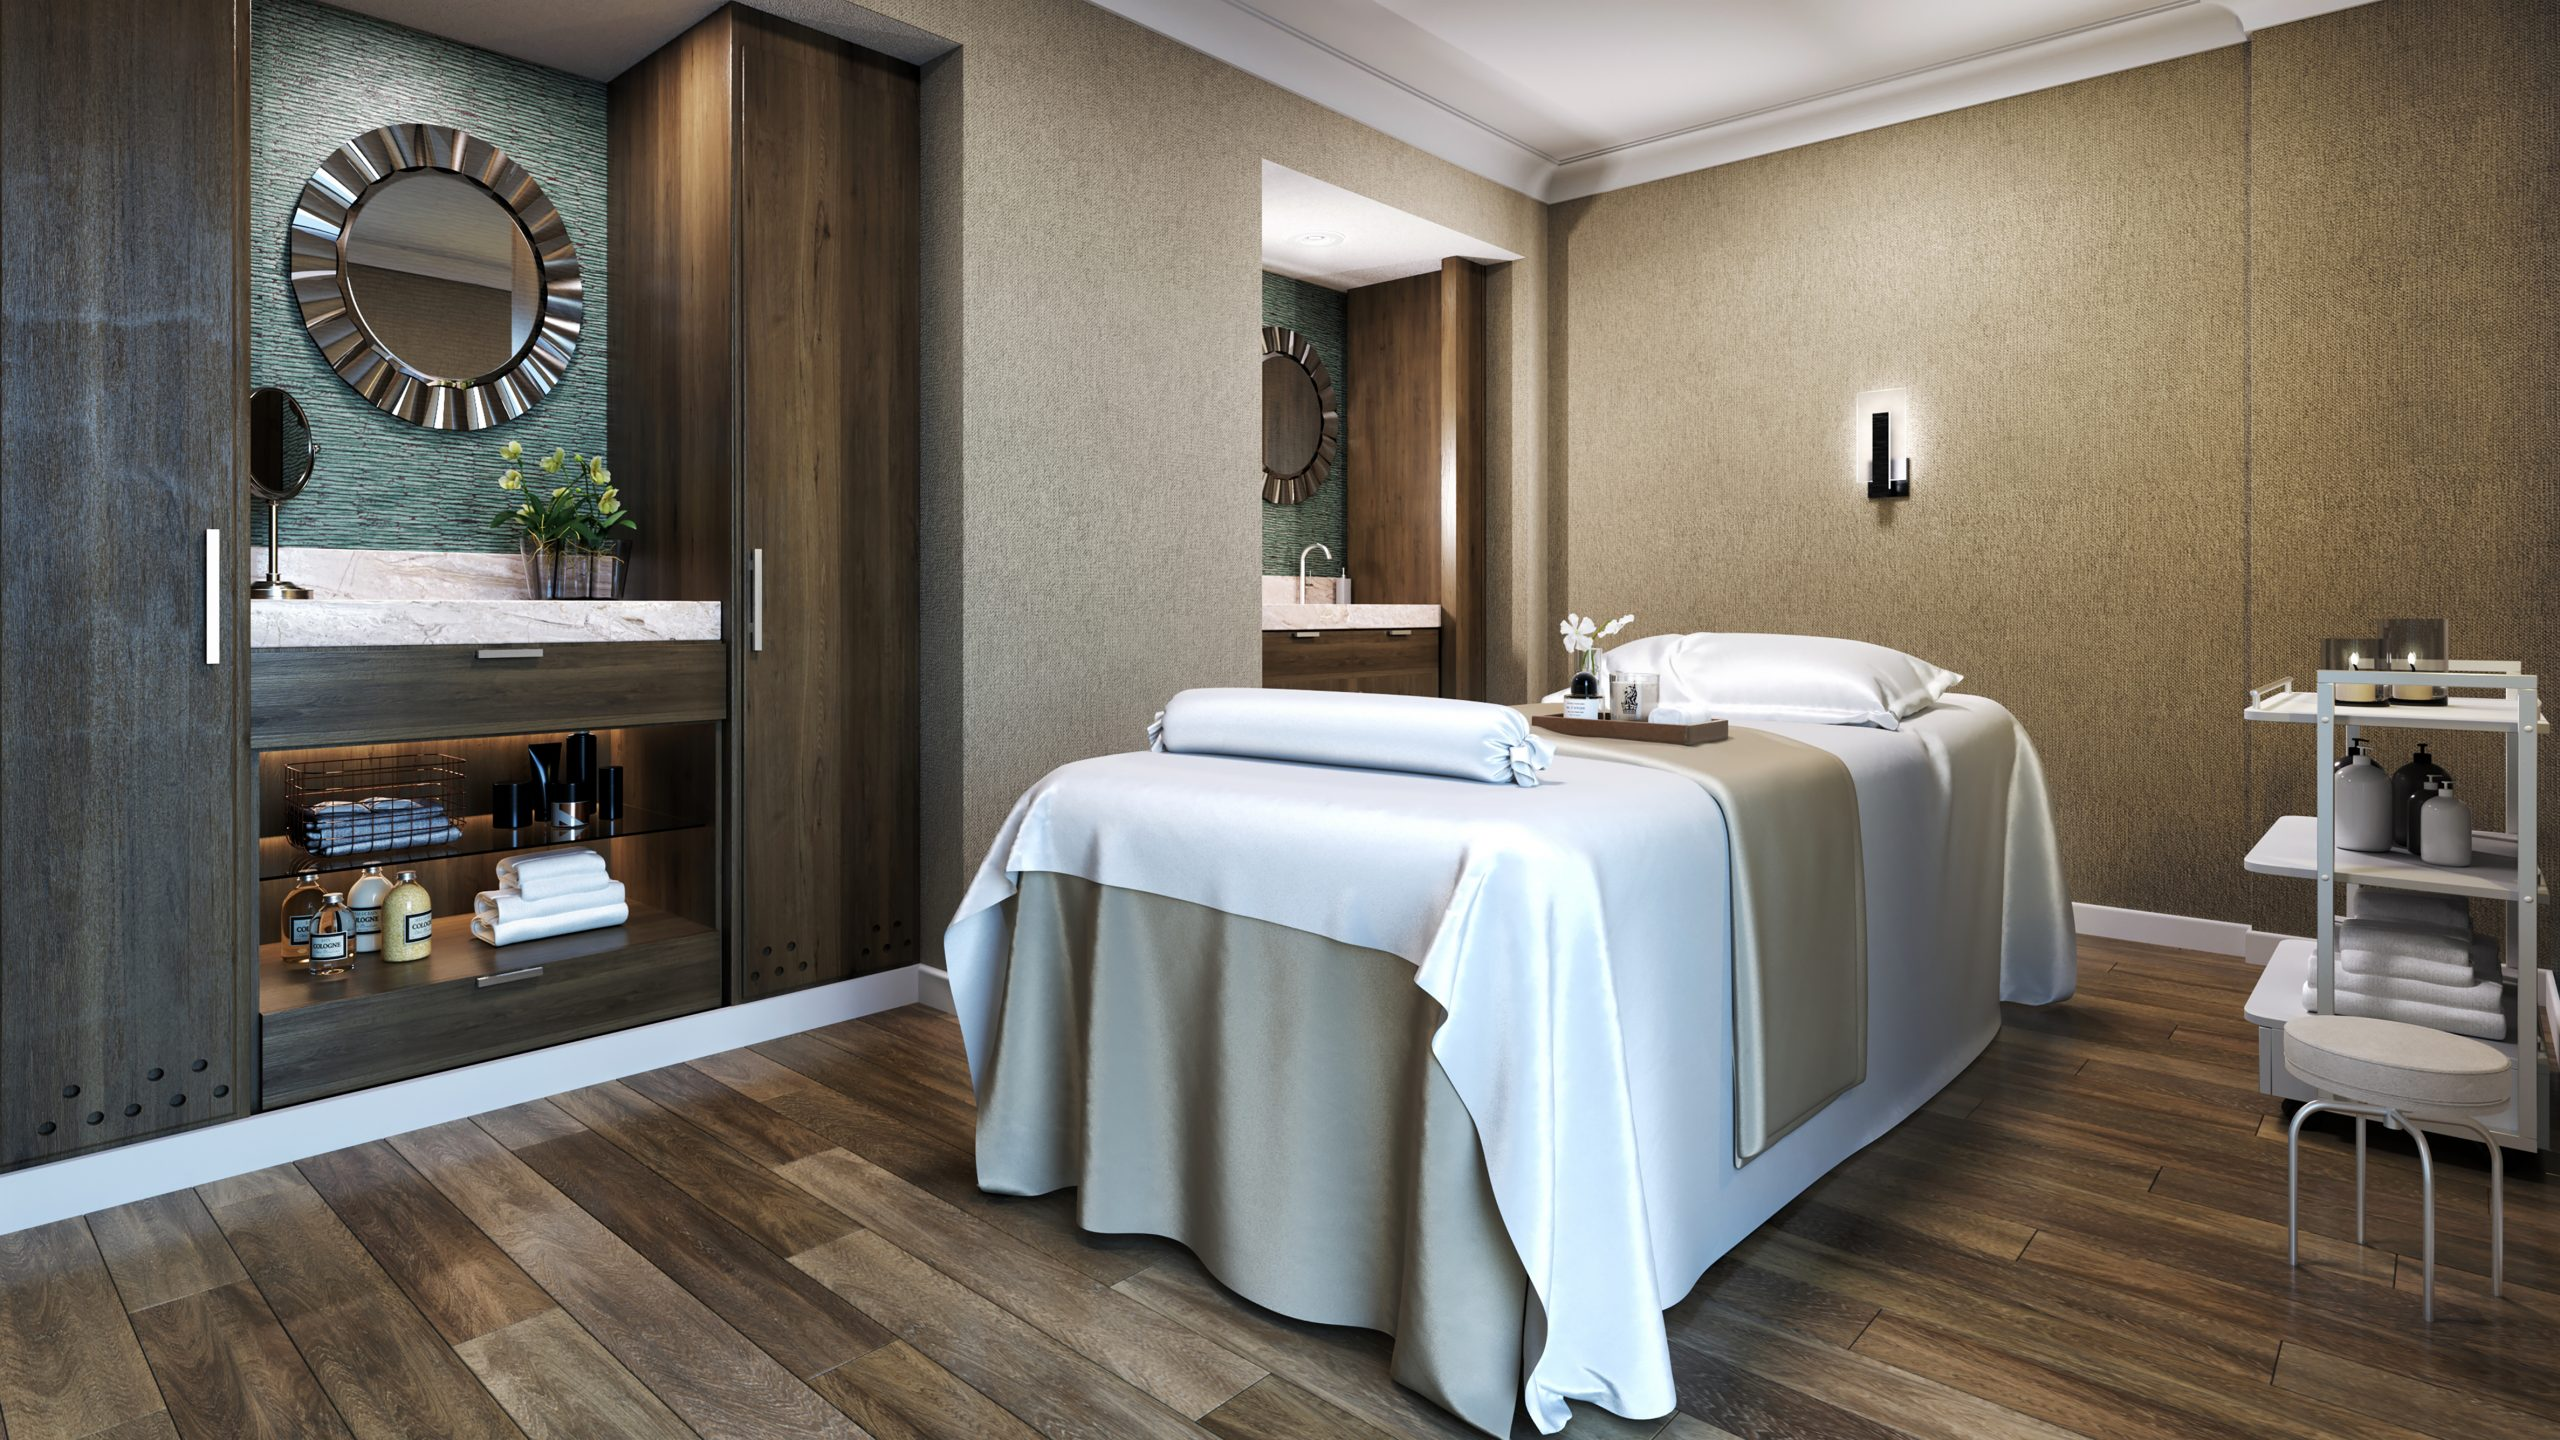 Ritz-Carlton New Orleans Spa - Treatment Room 3D render